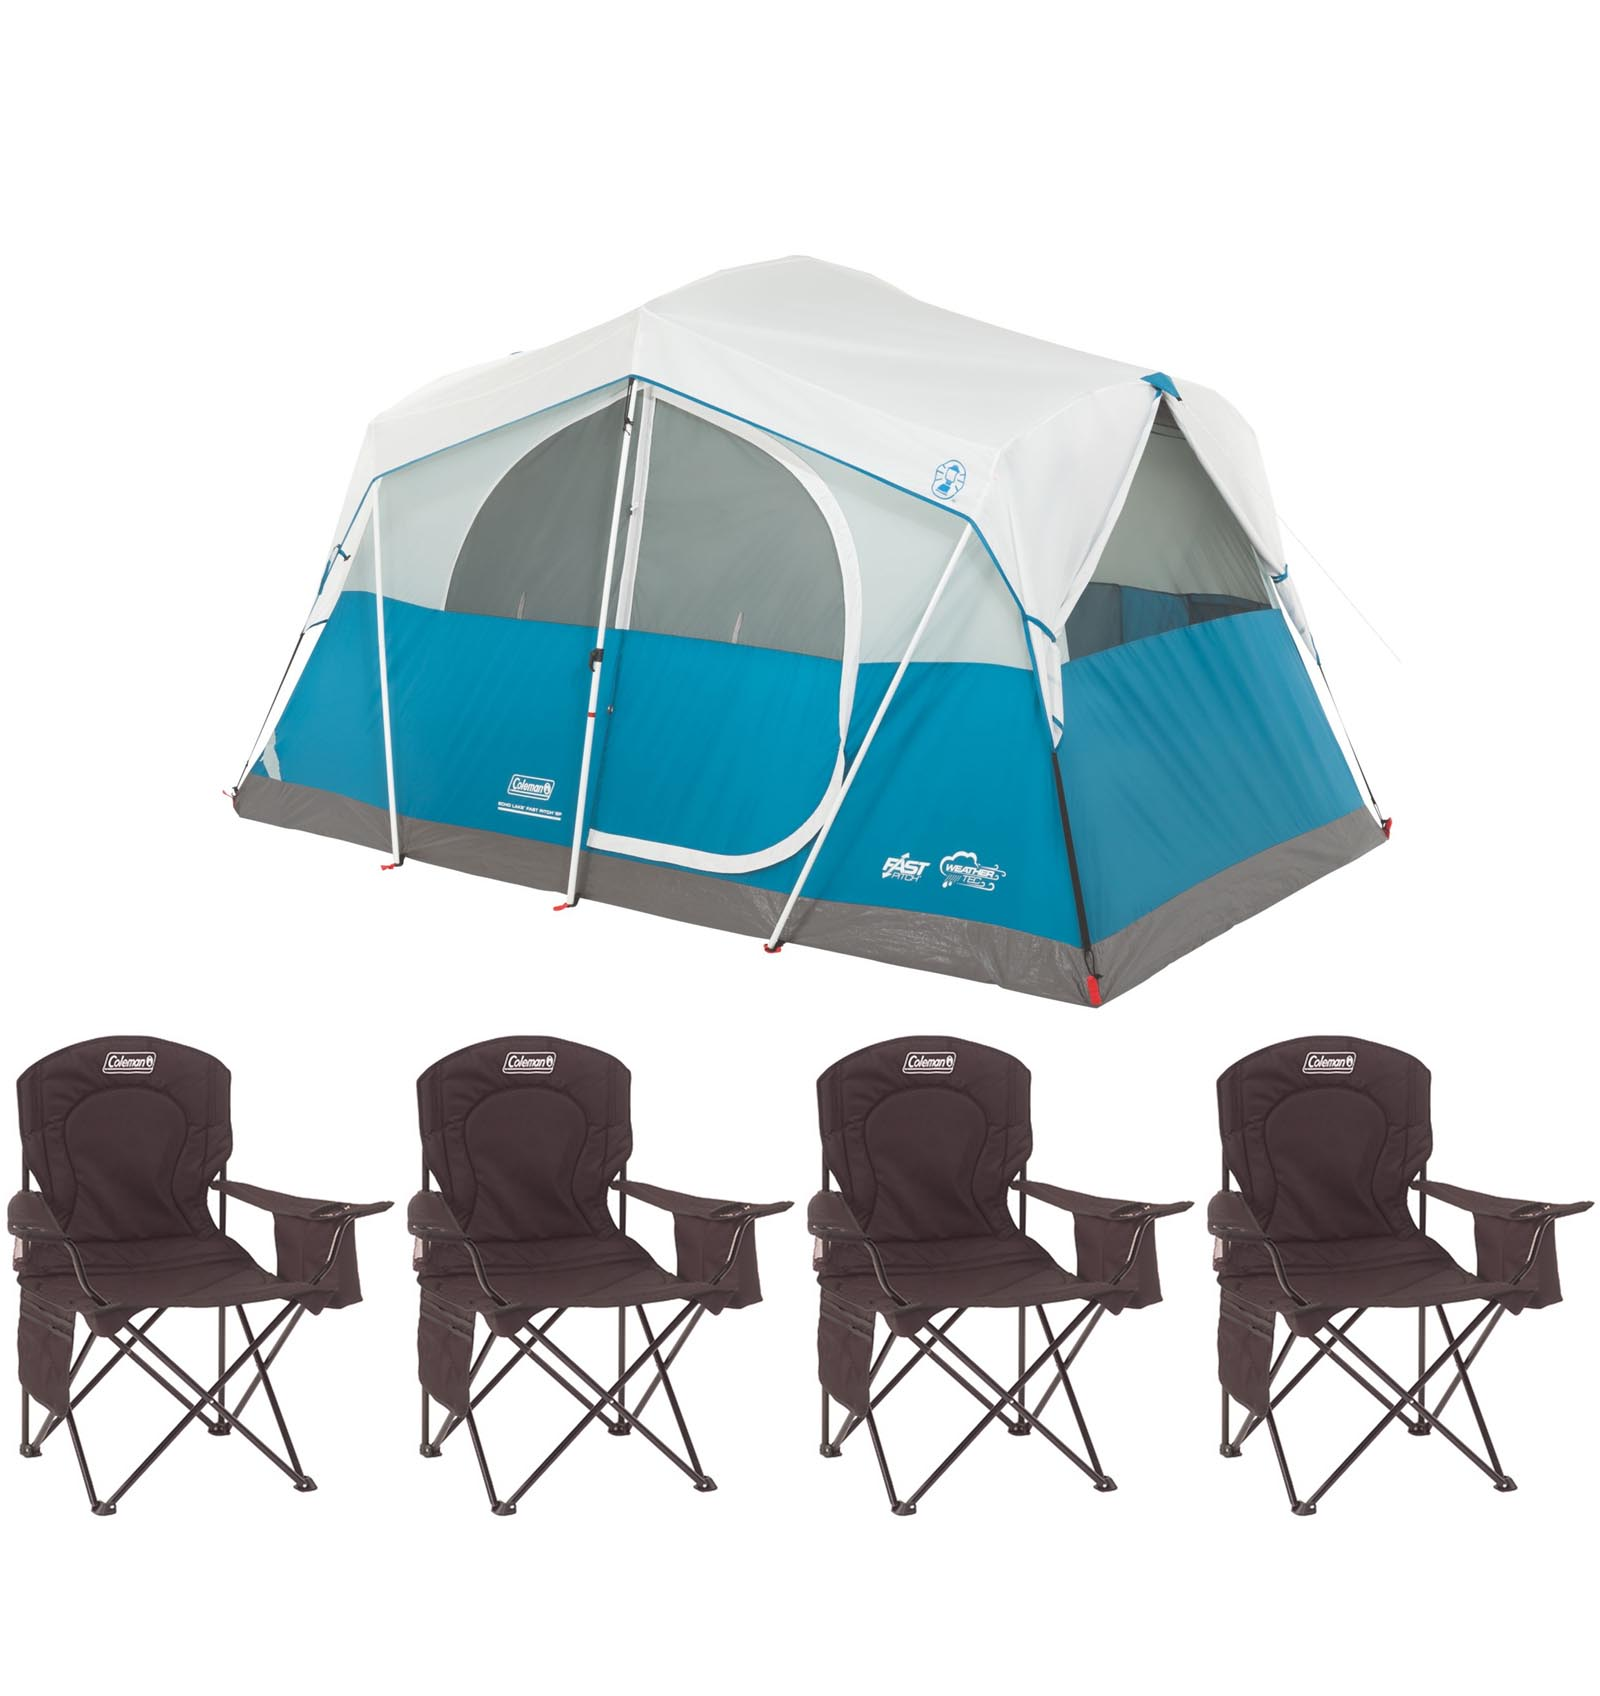 Coleman Echo Lake 6 Person Fast Pitch 12' x 7' Cabin Tent w/ (4) Camping Chairs